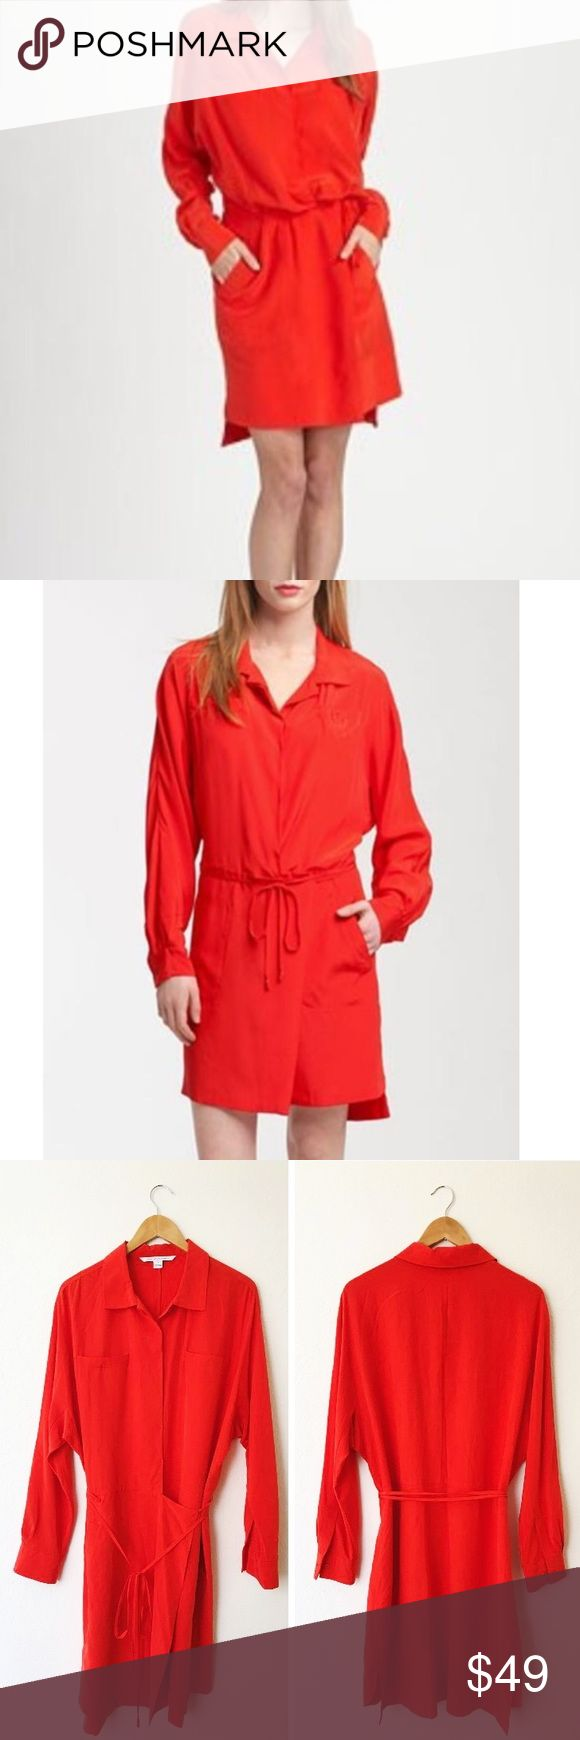 "DVF Rosetta Wrap Shirtdress in Cherry Very good preowned condition, hidden buttons halfway down the front, Wrap Skirt effect with tie around waist, long sleeves, pocket at the chest. Last picture shows some spots in the back of the right shoulder area, otherwise Dress is in excellent condition. Would need to be dry cleaned. Price reflects imperfection. Color is like a deep coral color but is officially called ""cherry."" 100% silk, worn once. Diane Von Furstenberg Dresses Long Sleeve"